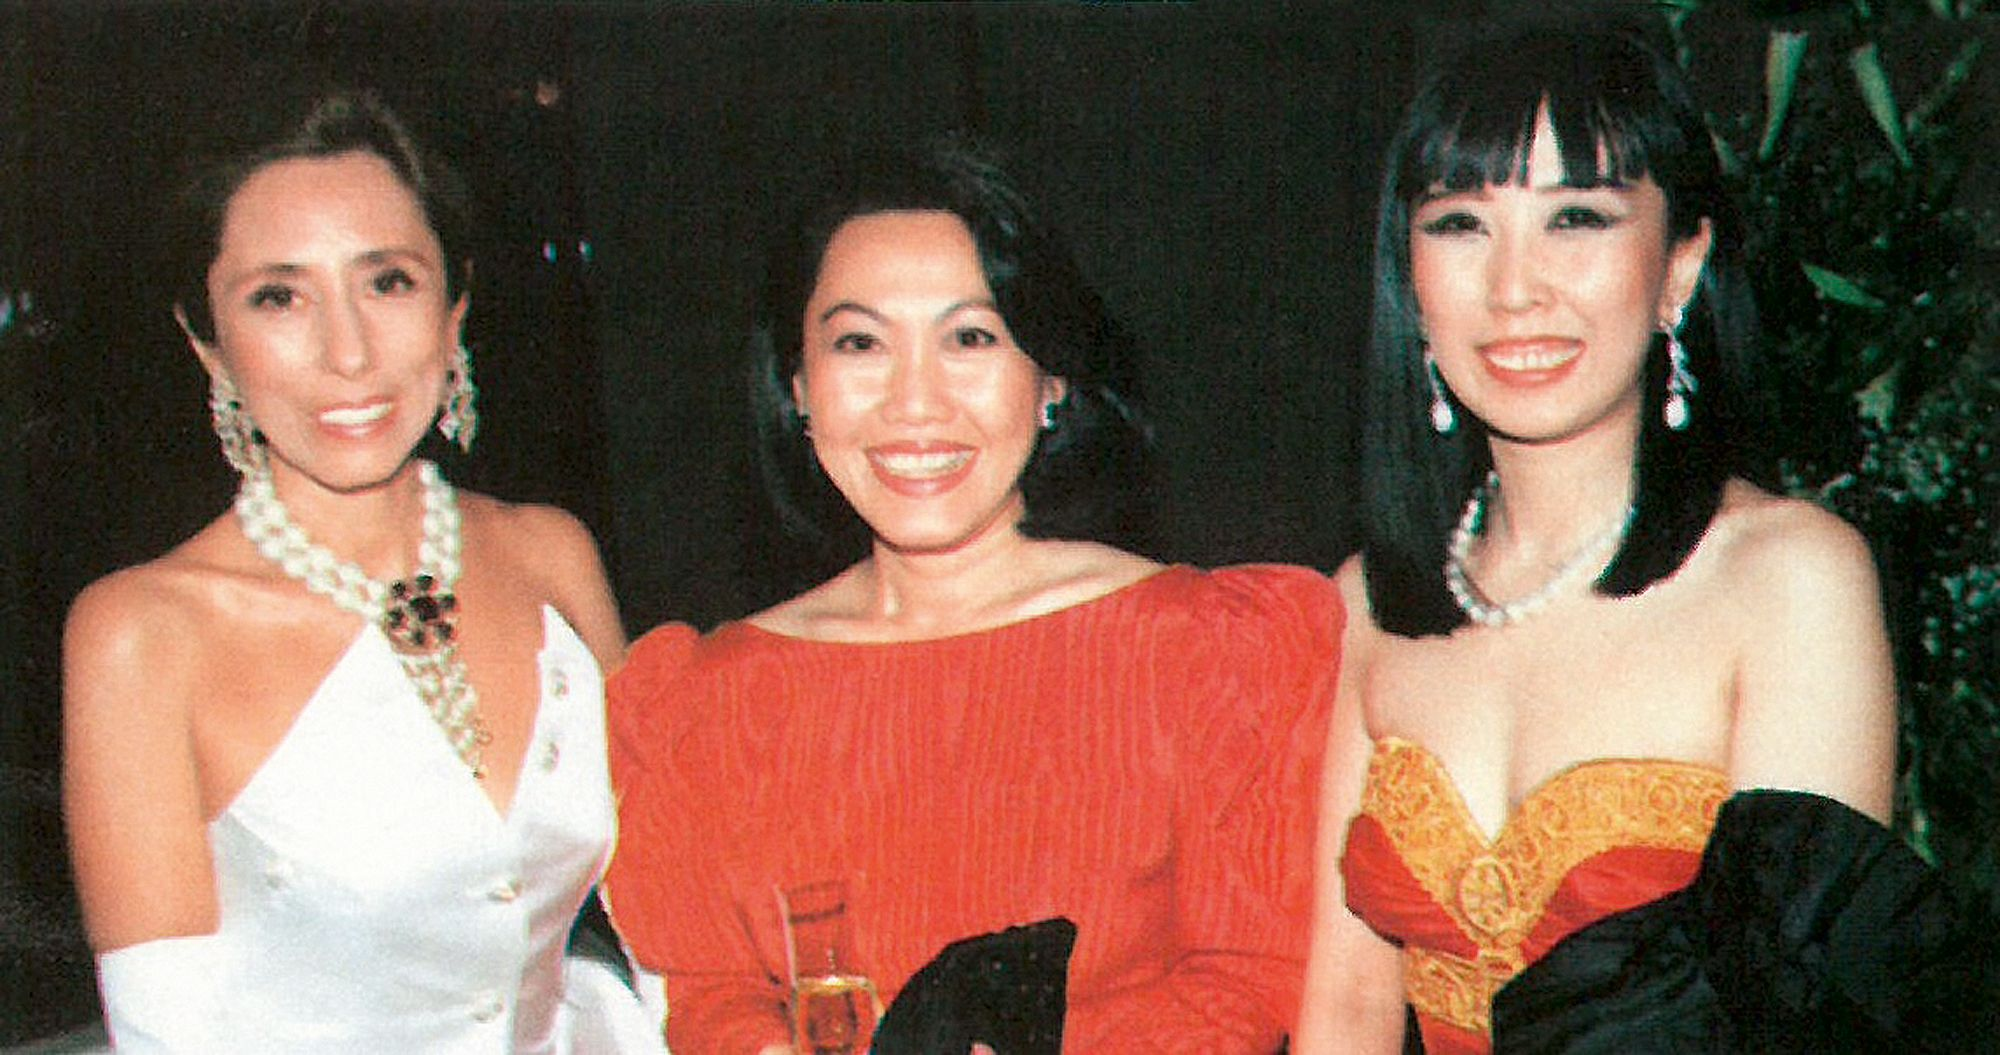 Tatler Throwback: Party Pics From The '90s